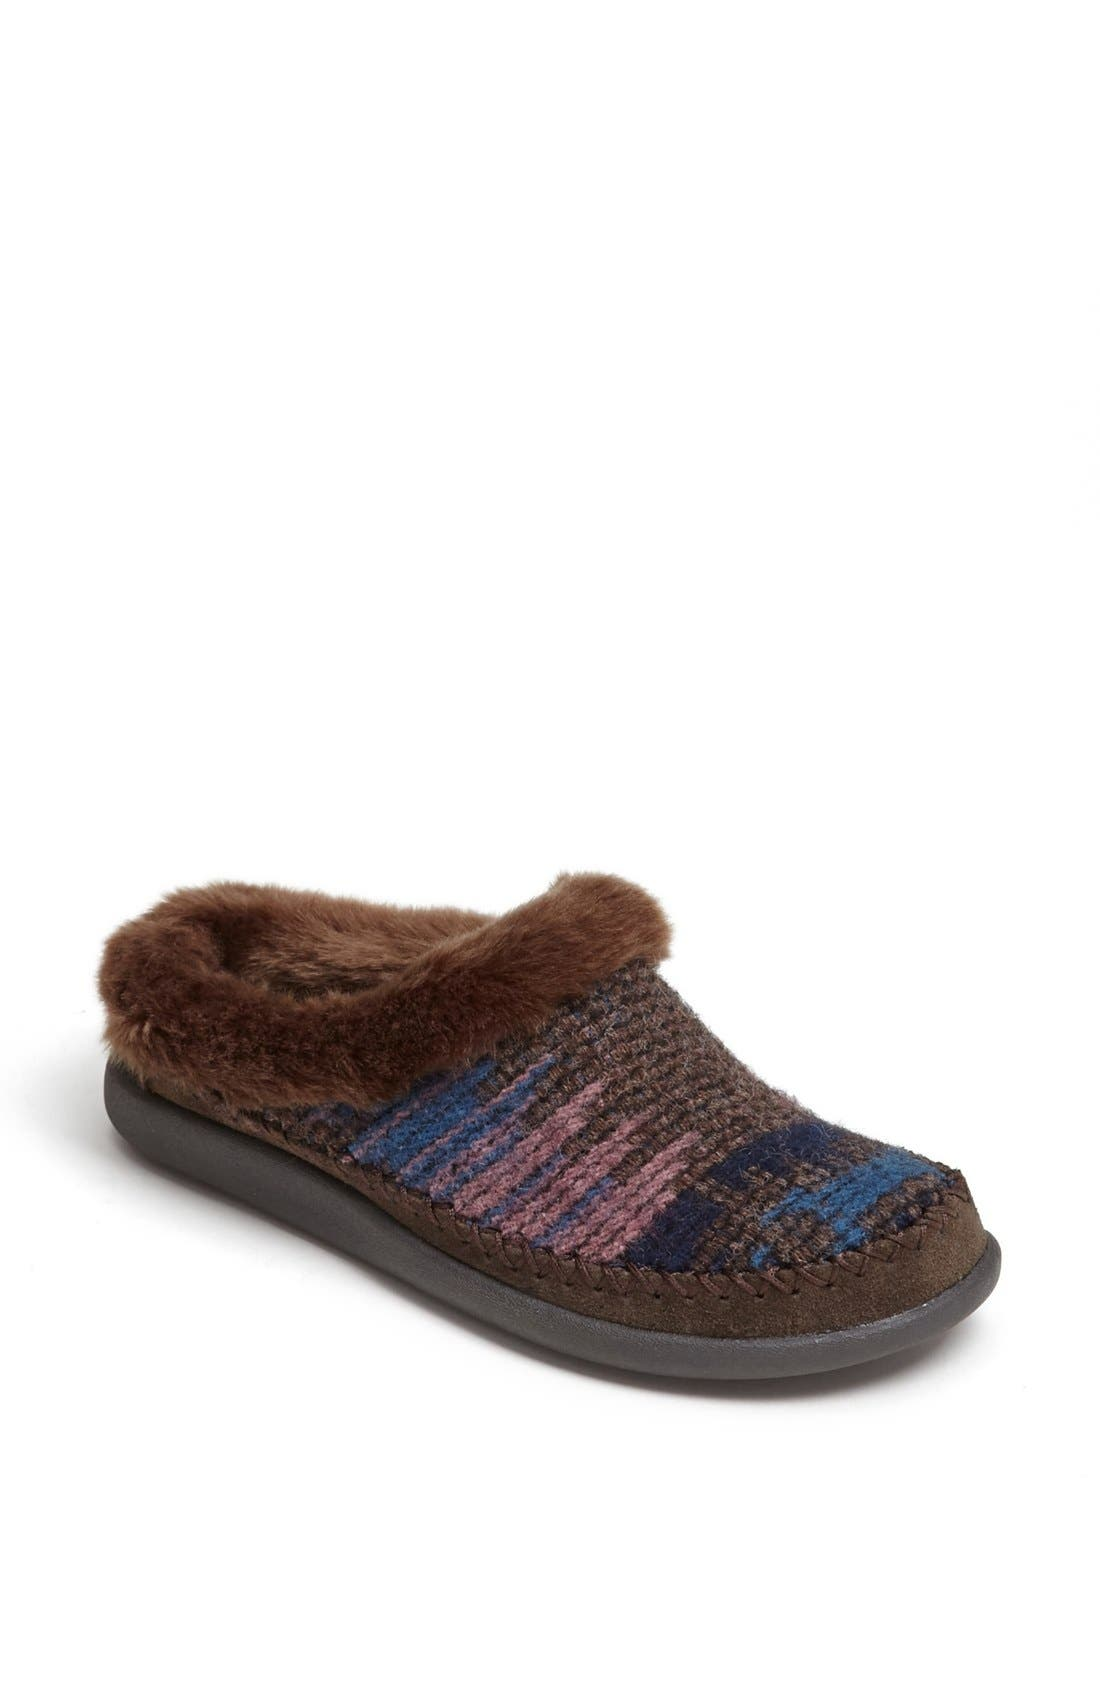 Alternate Image 1 Selected - Woolrich 'Dove Creek' Slipper (Women)